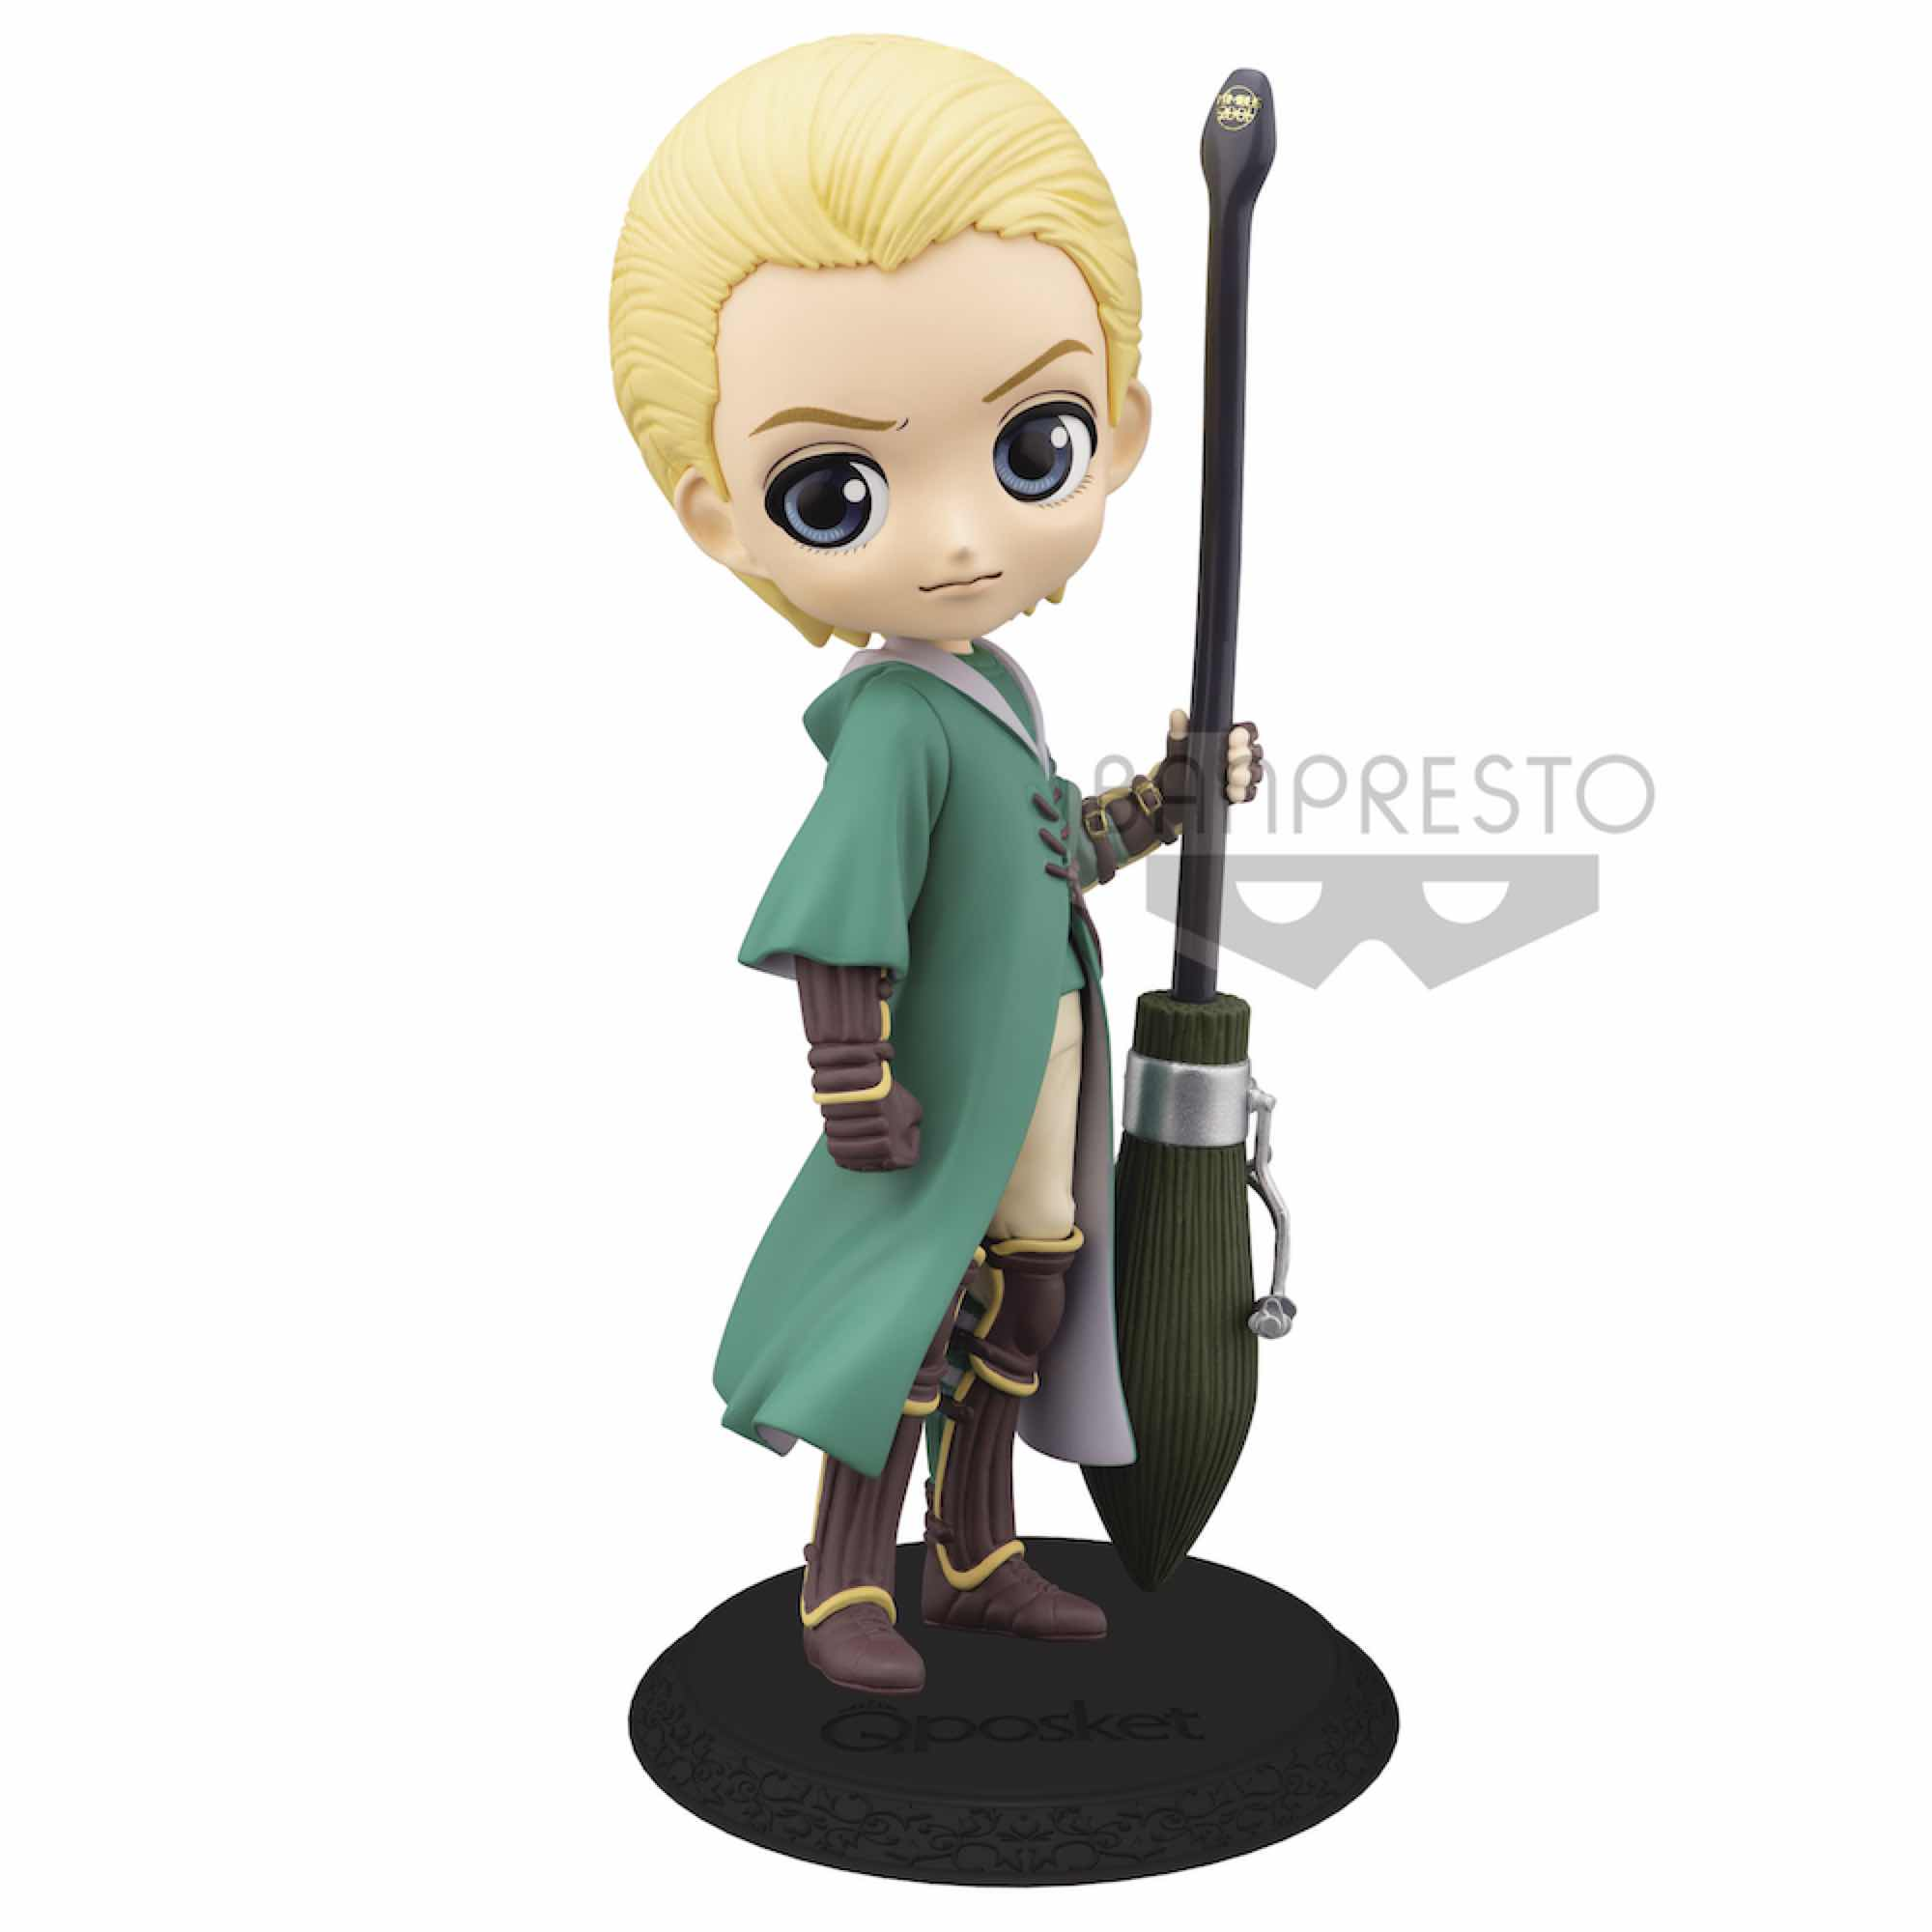 DRACO MALFOY QUIDDITCH VER. B FIGURA 14 CM HARRY POTTER Q POSKET